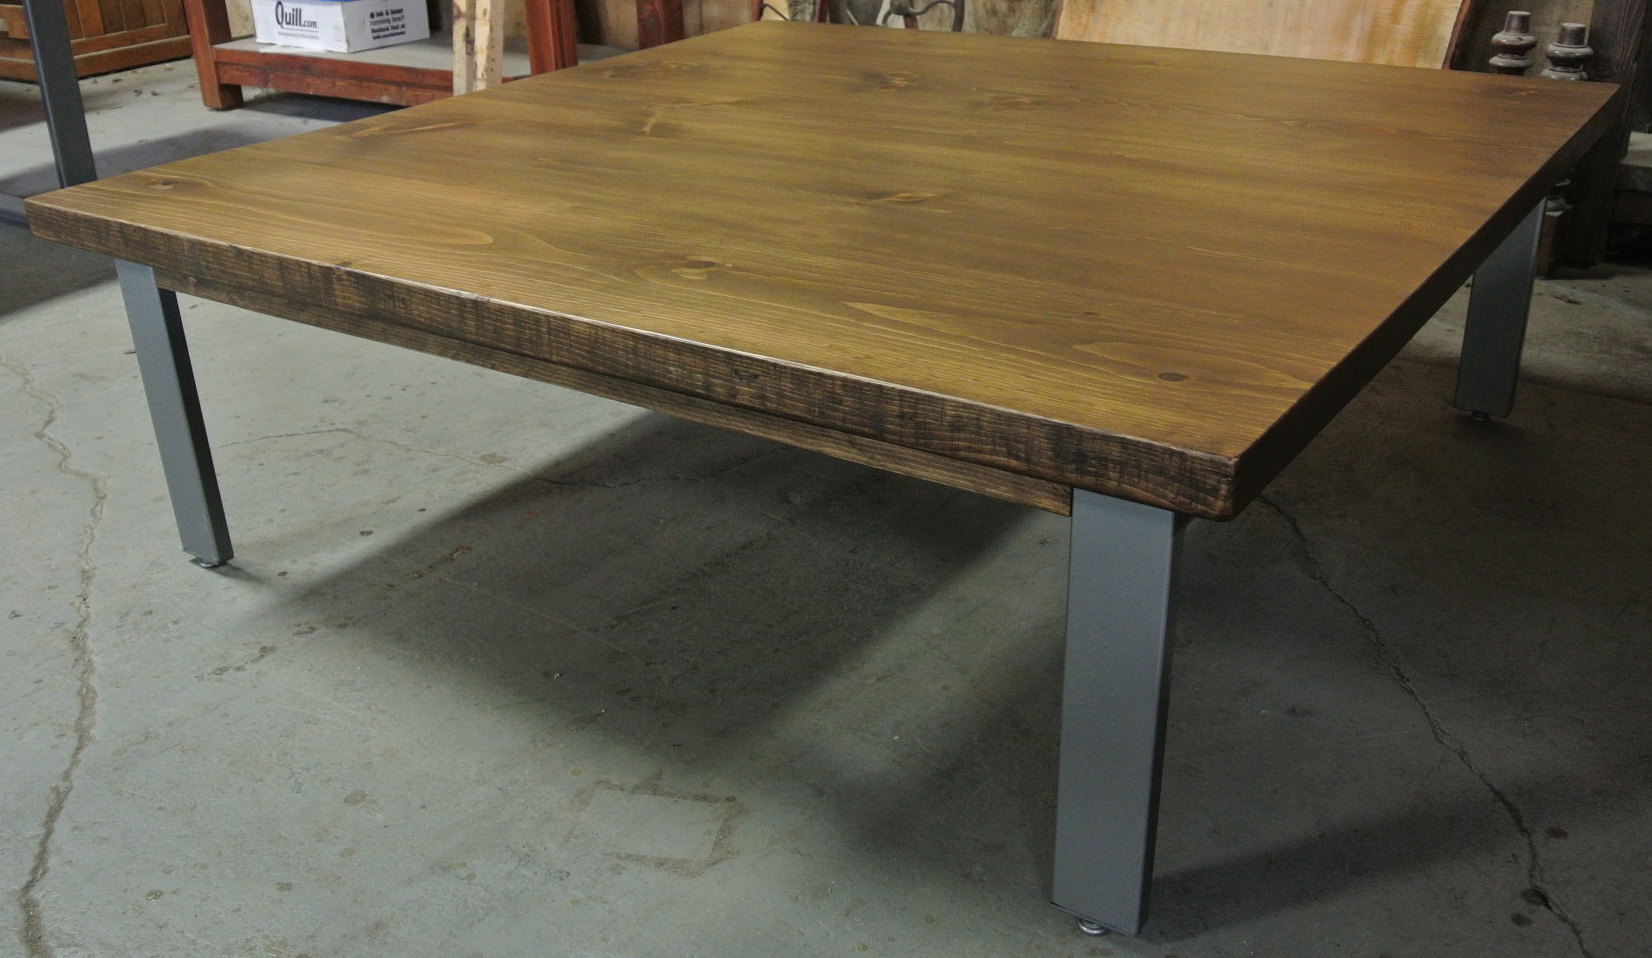 Pine Coffee Table with 3x1 Staple Legs. Finished in Bright Hammered Steel.